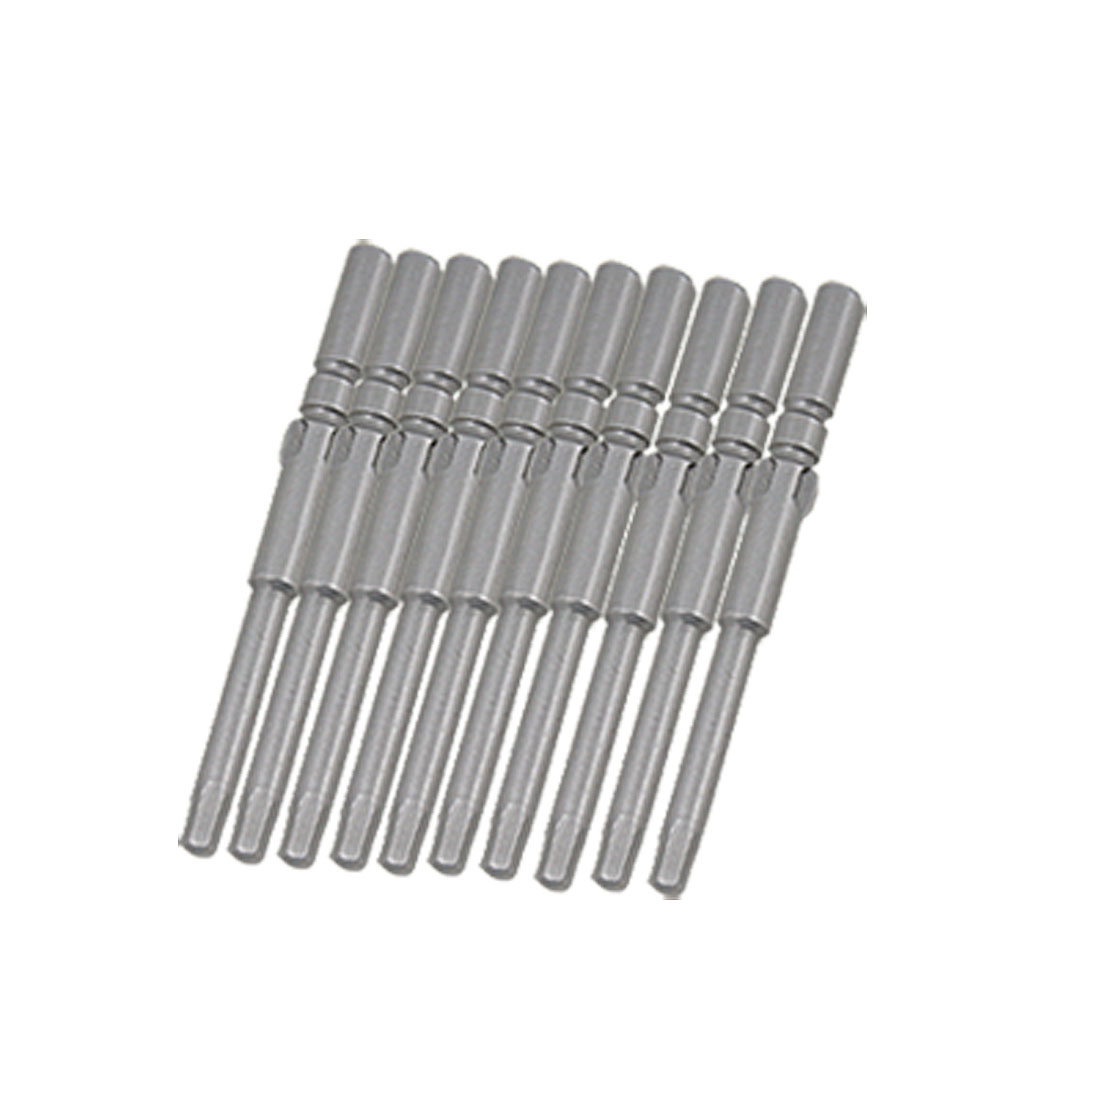 10 PCS 5 x 60 x 2.5mm Screwdriver Round Shank Hex Bits Tips